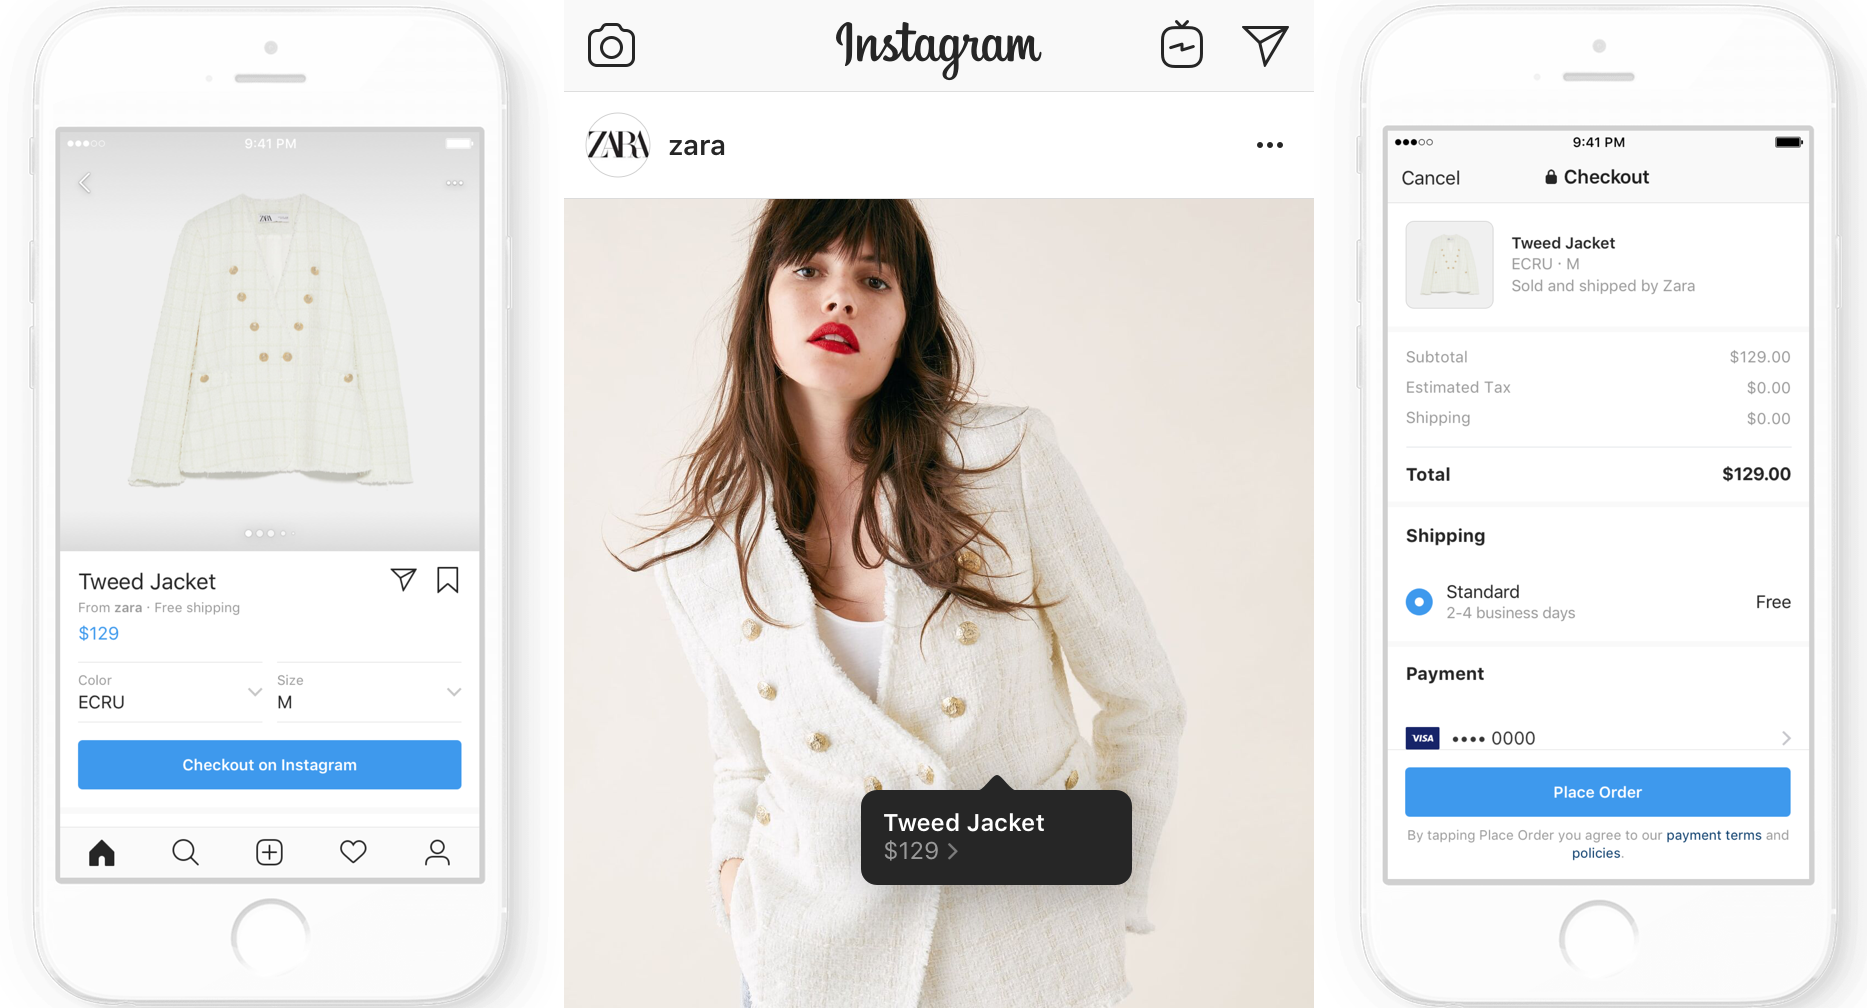 Order Of Instagram Stories Feed 2019